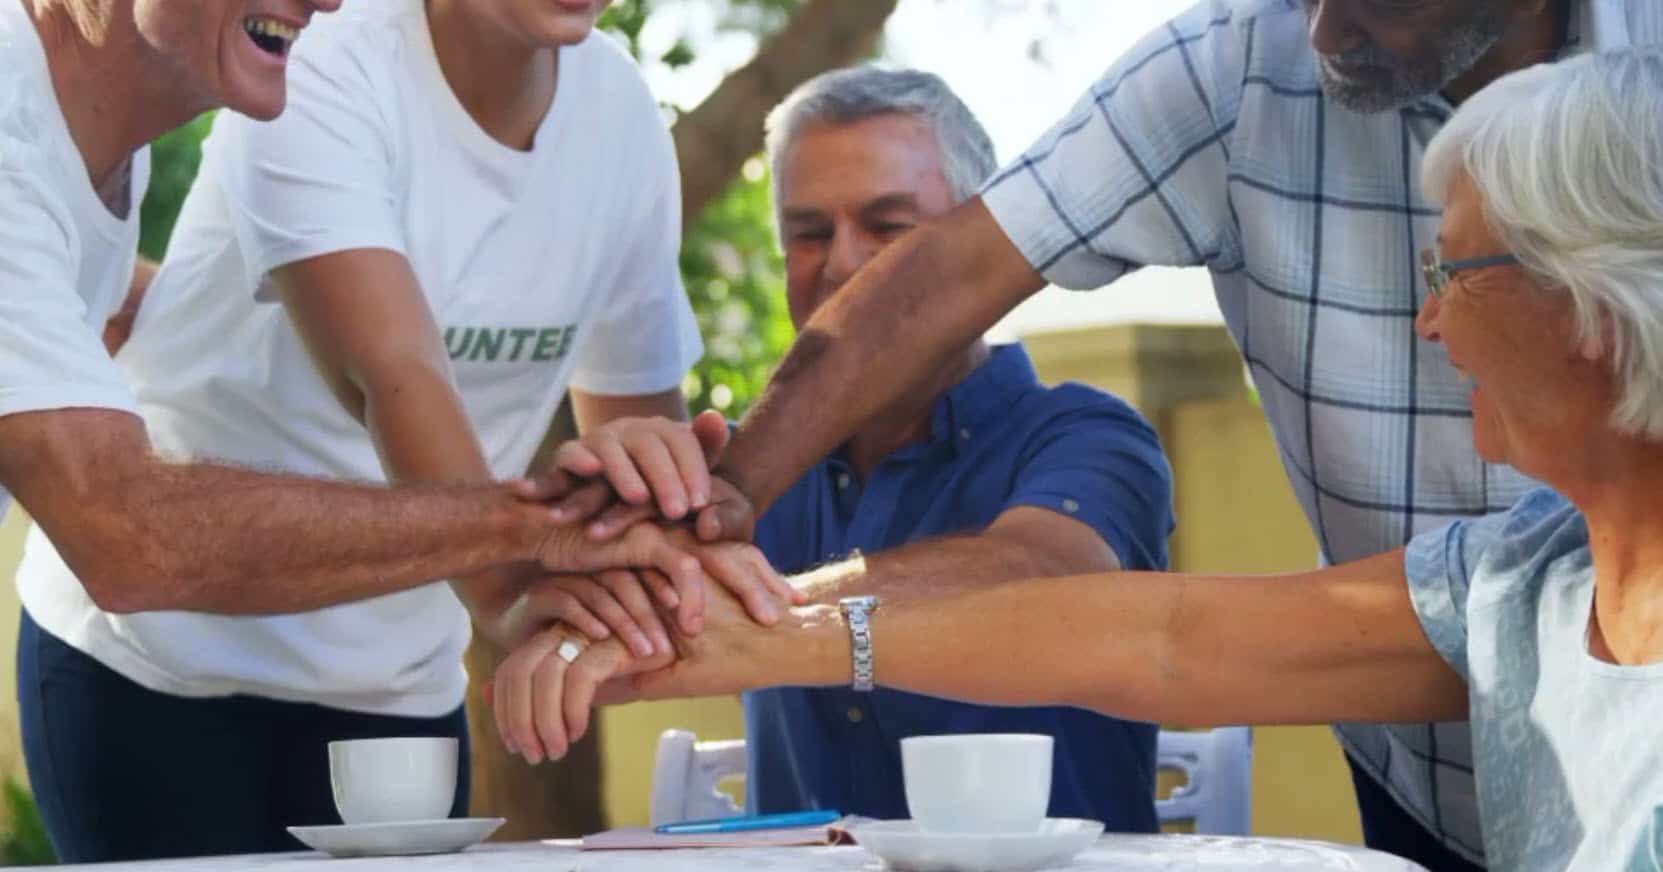 Volunteering for Seniors: The Best Job for a Healthy Retirement